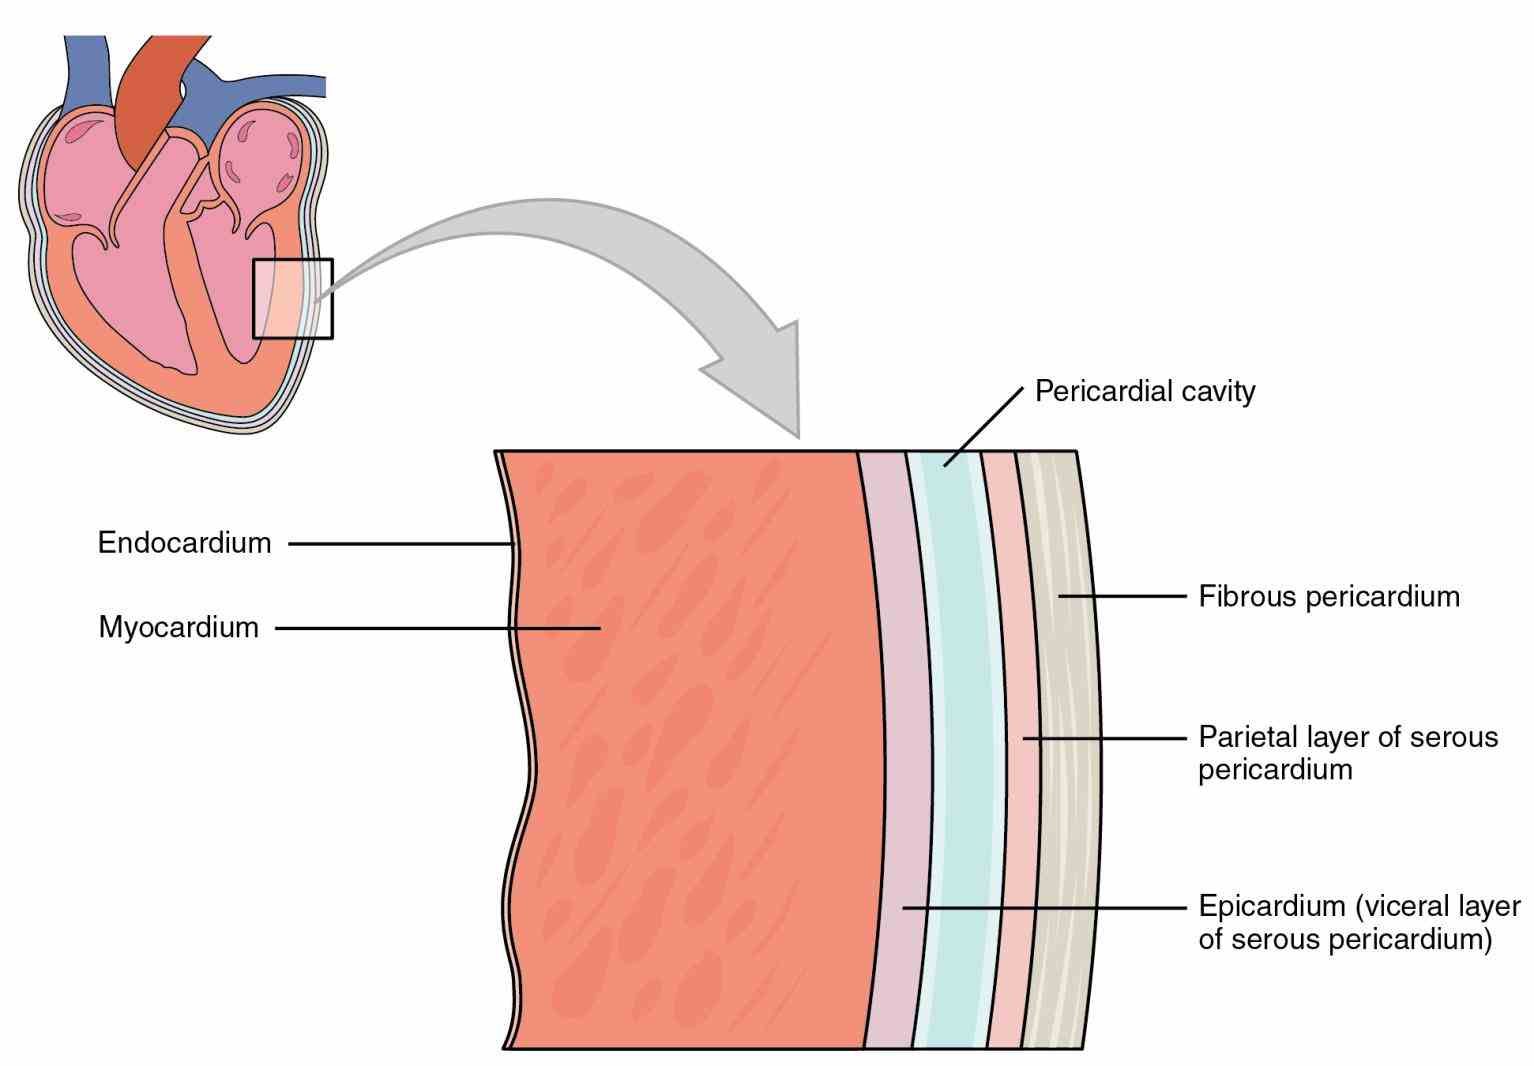 rests just superior to myocardium is muscular middle layer wall that contains the heart Muscles Of The Heart Are